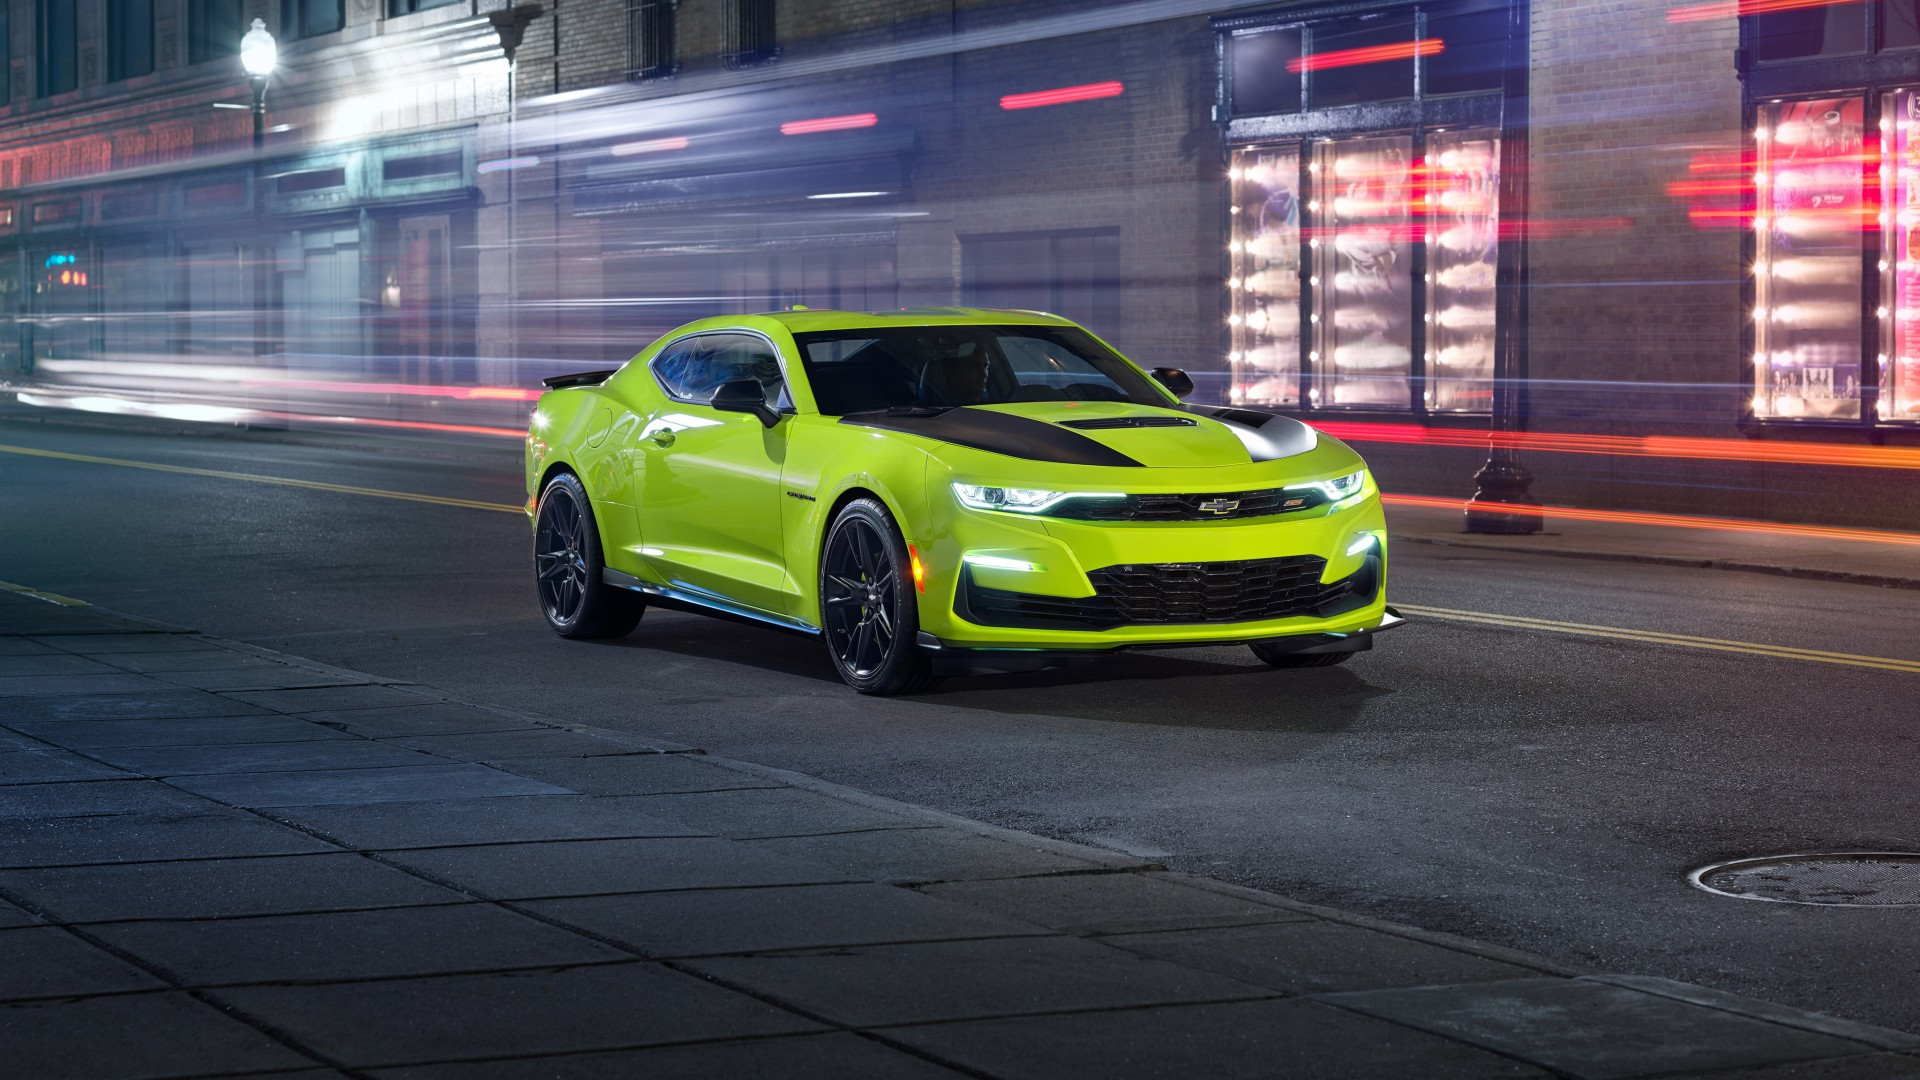 Chevrolet Camaro Ss Shock Concept 4k 2018 Wallpaper Hd